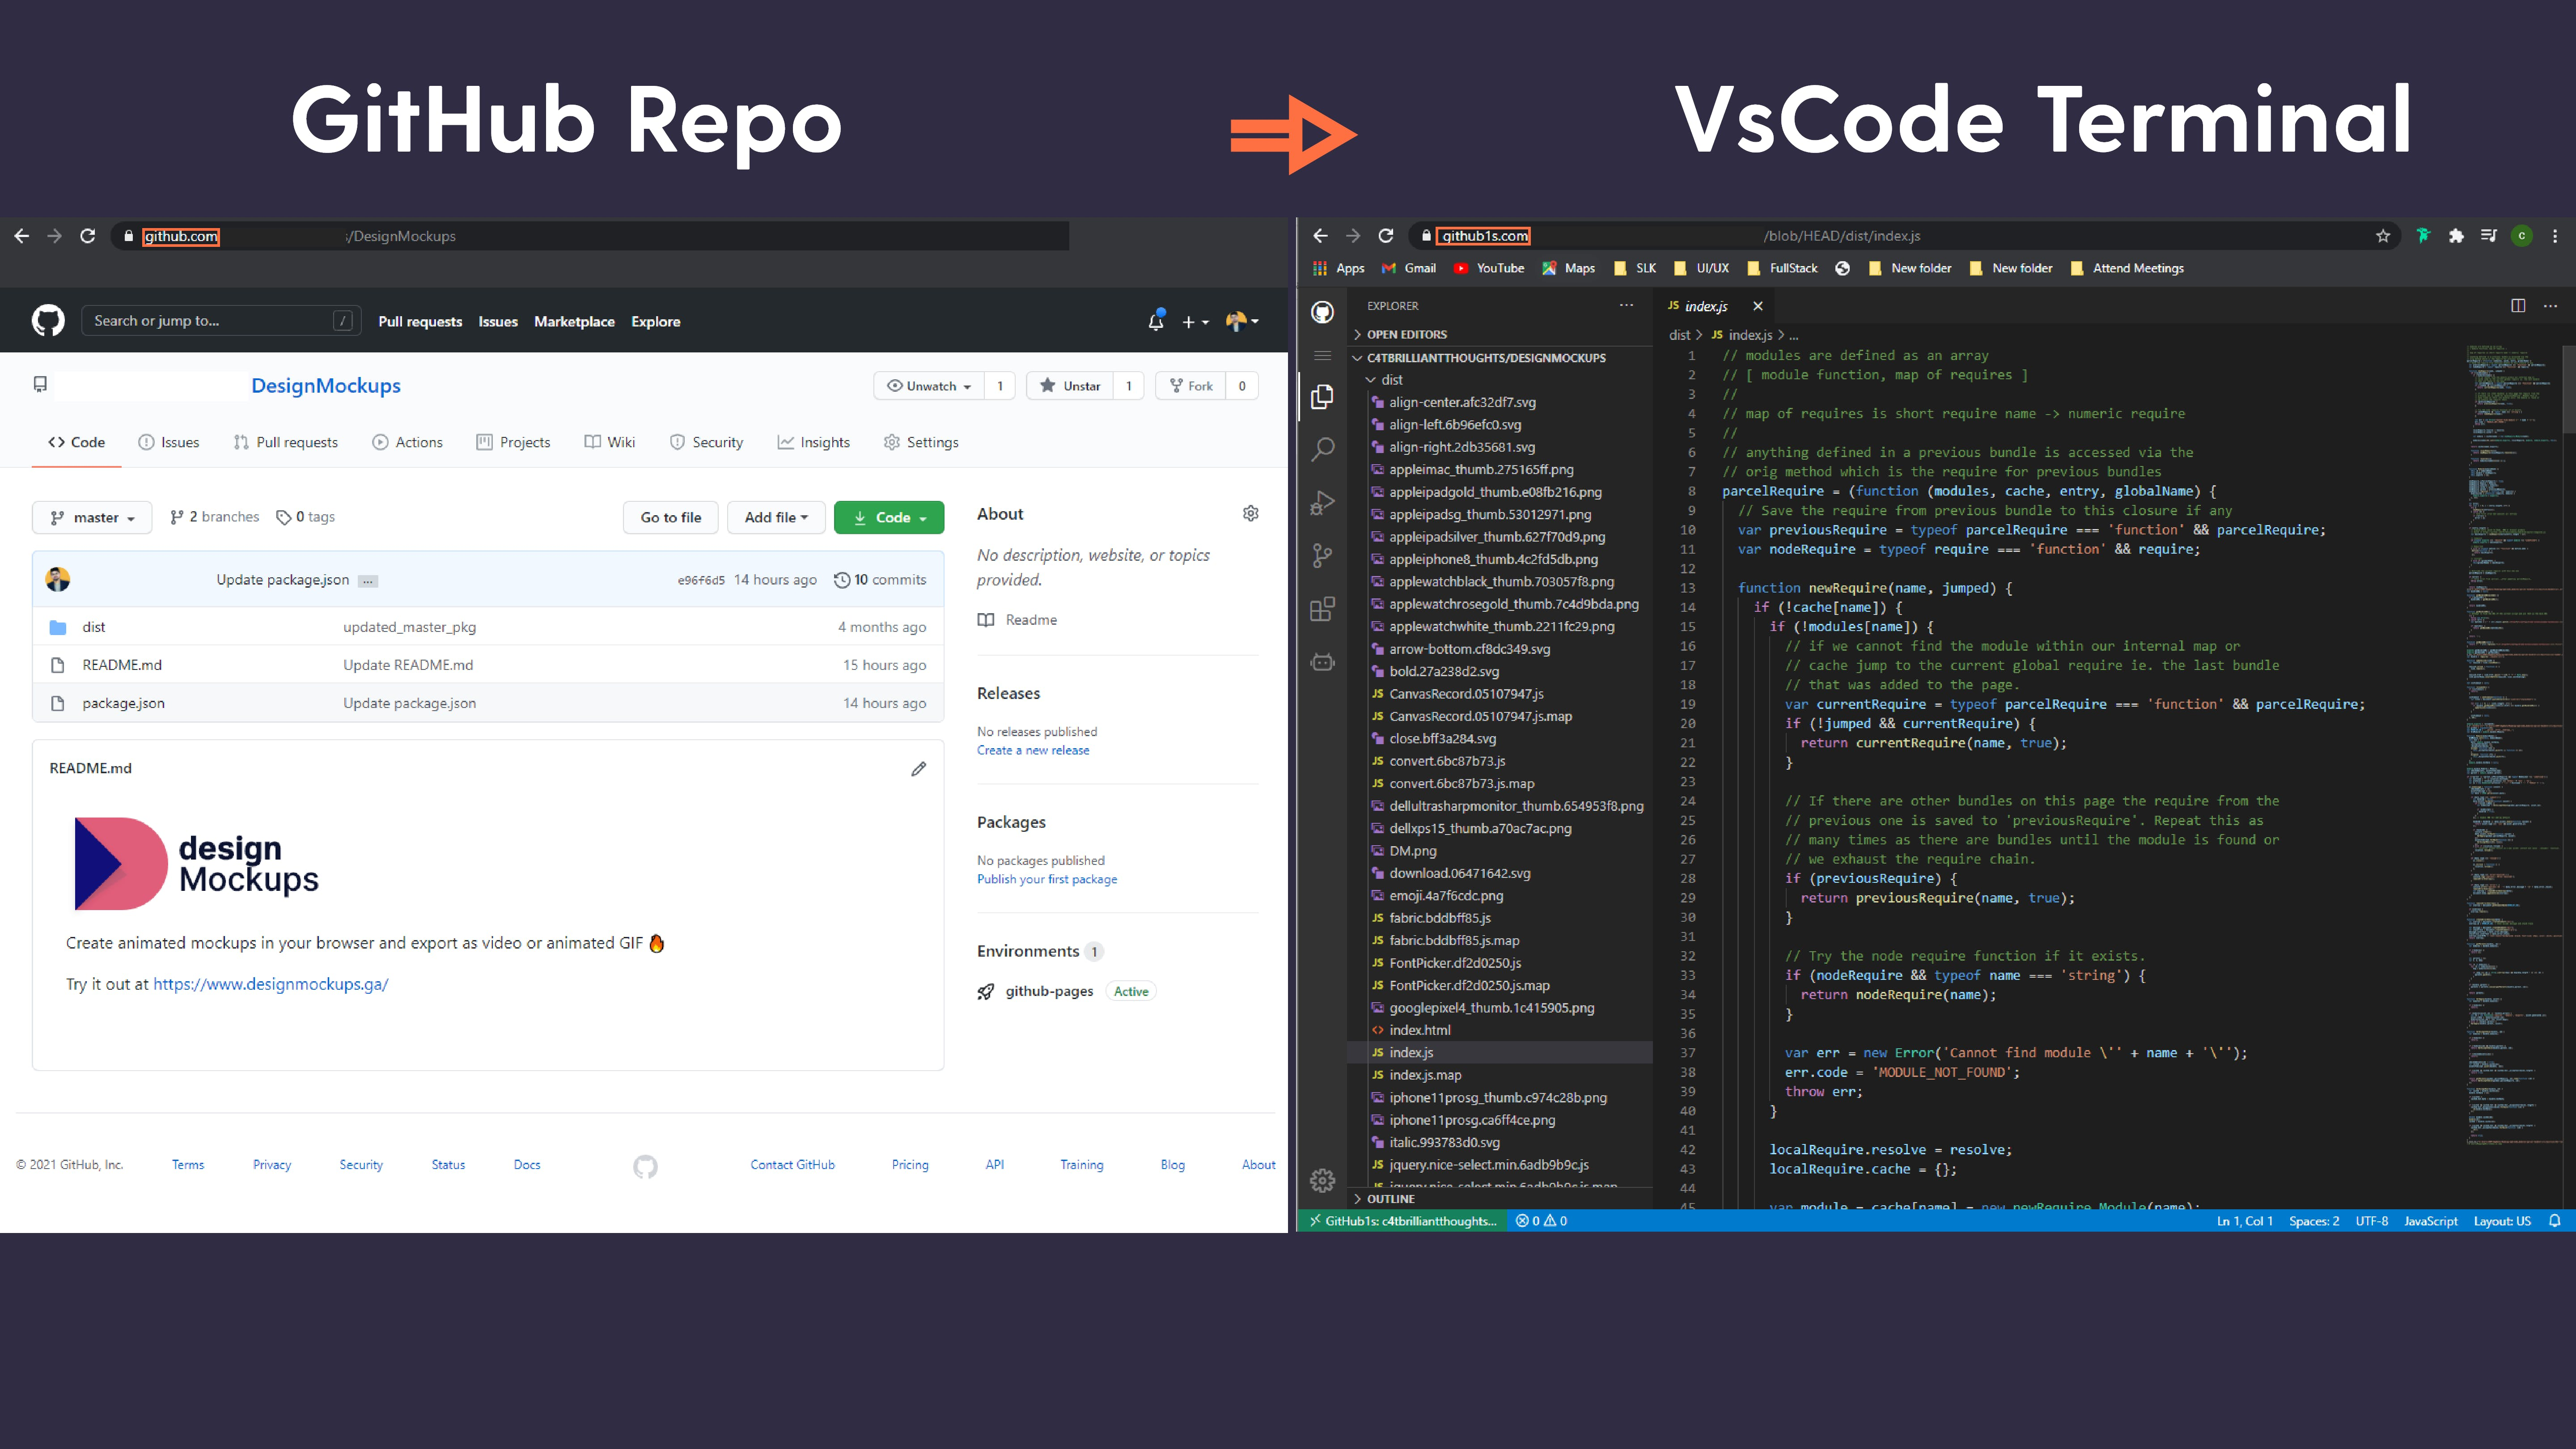 vscode_browser@3x.png